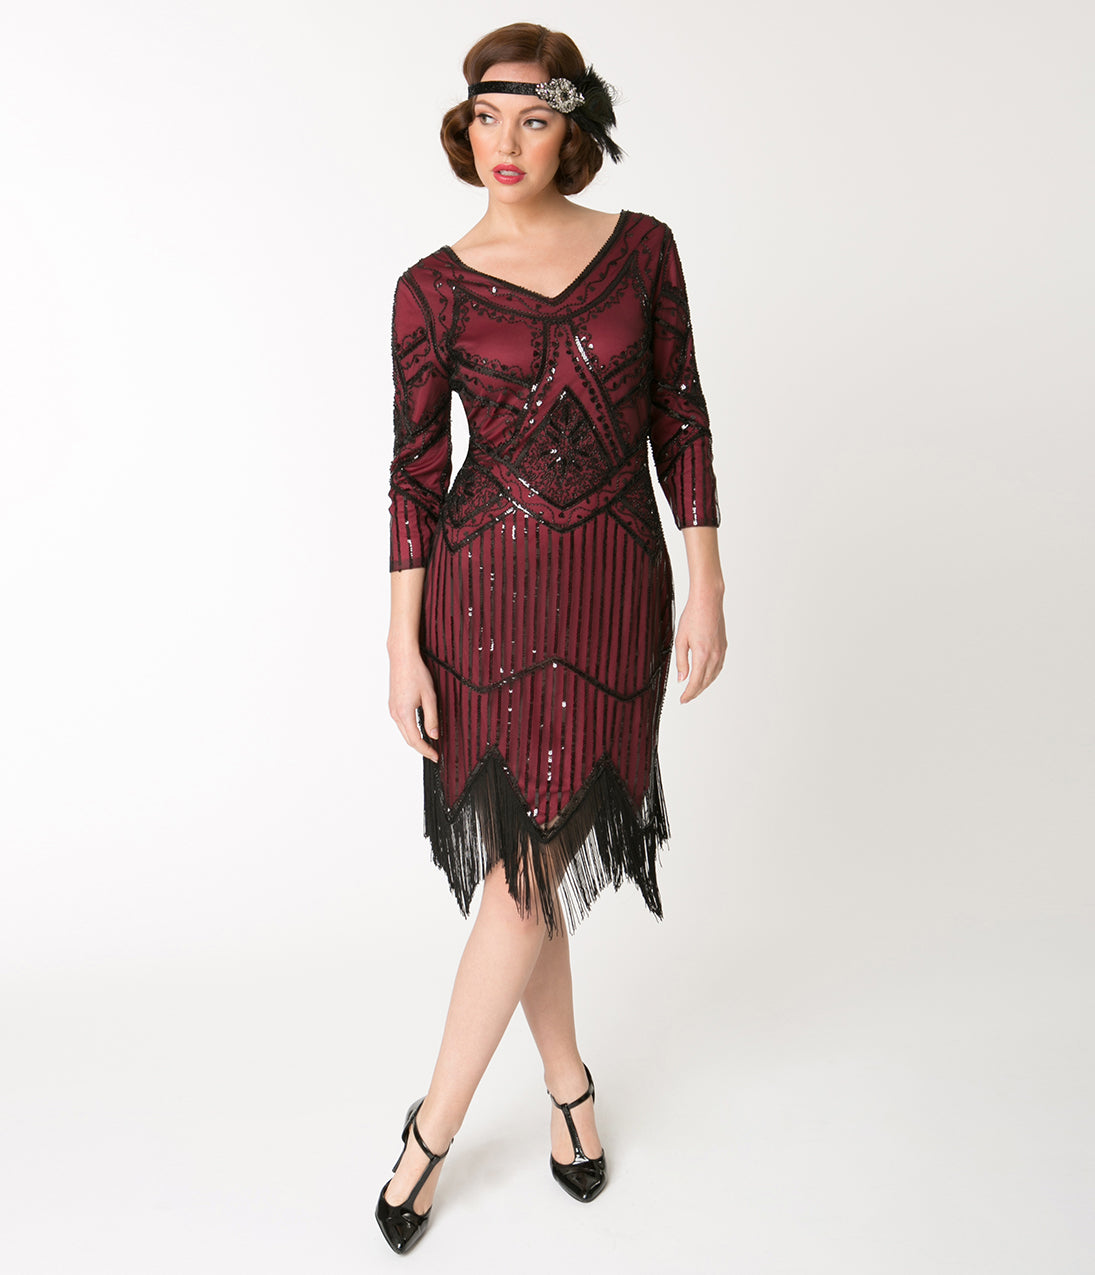 1920s Evening Gowns by Year Unique Vintage 1920S Burgundy Beaded Sleeved Noemie Fringe Flapper Dress $59.00 AT vintagedancer.com